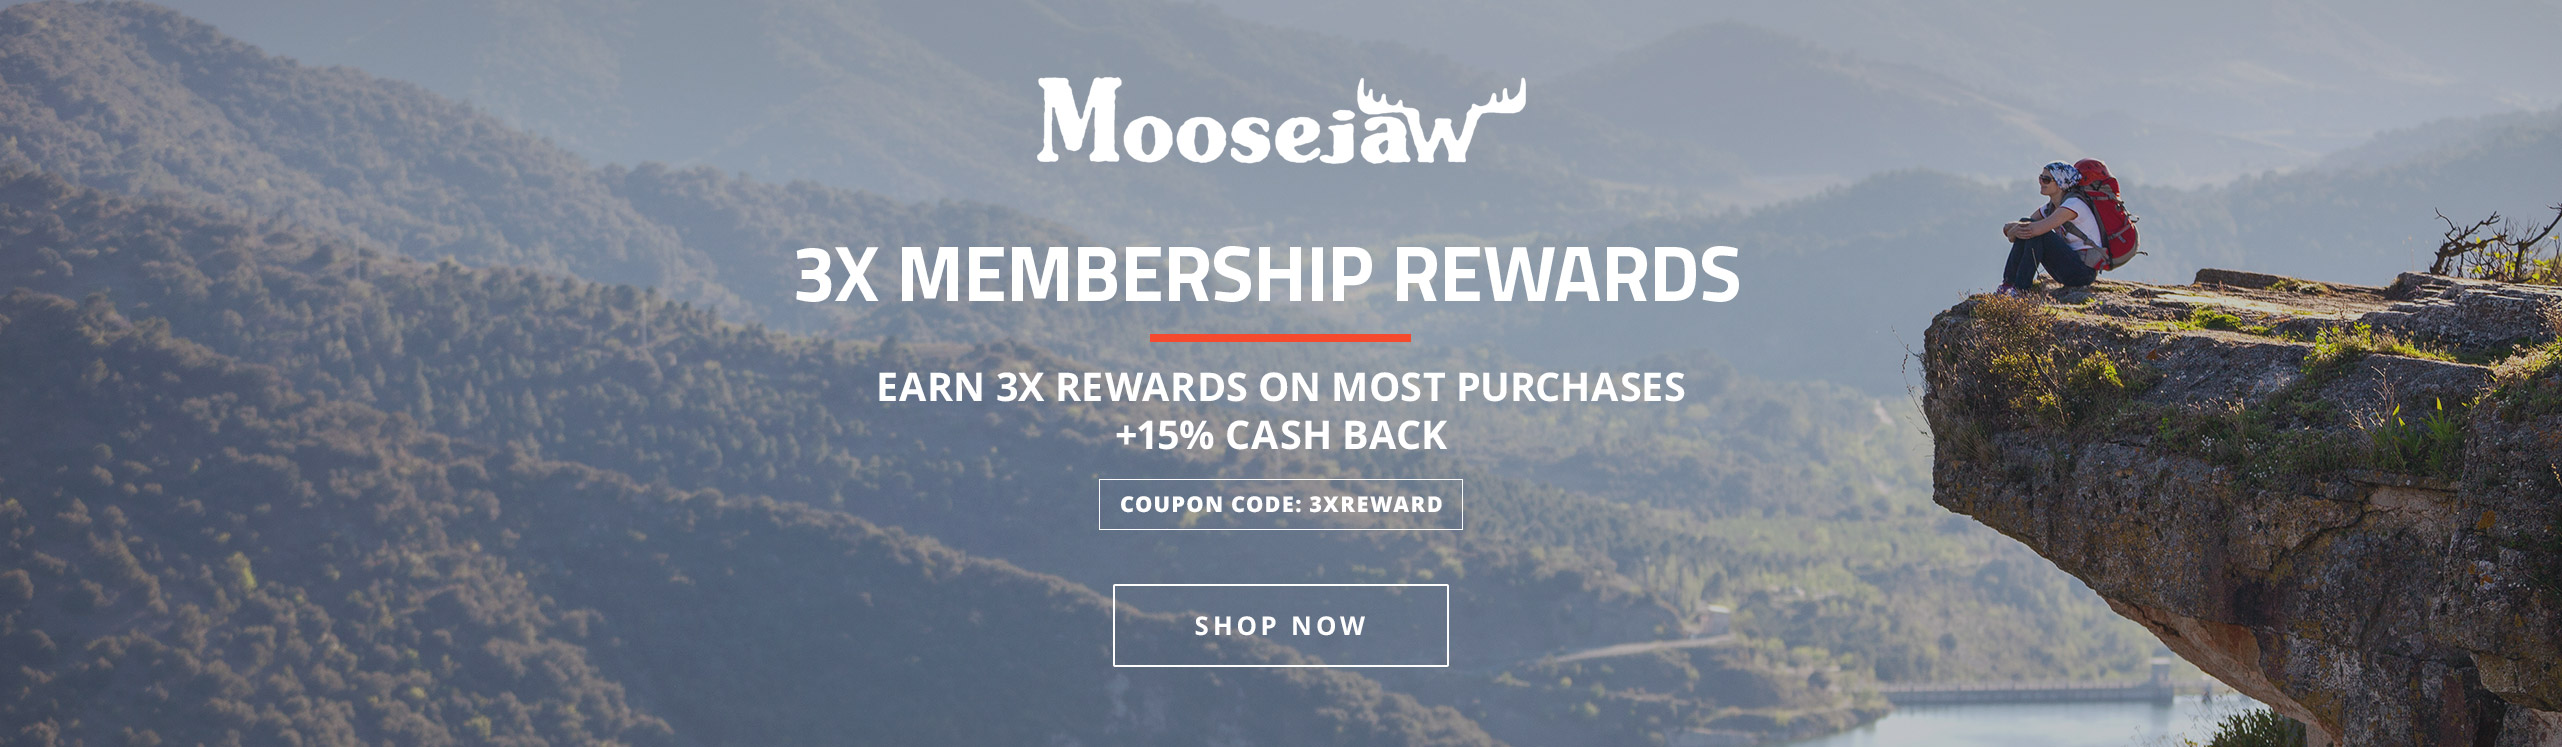 Moosejaw 3X Rewards